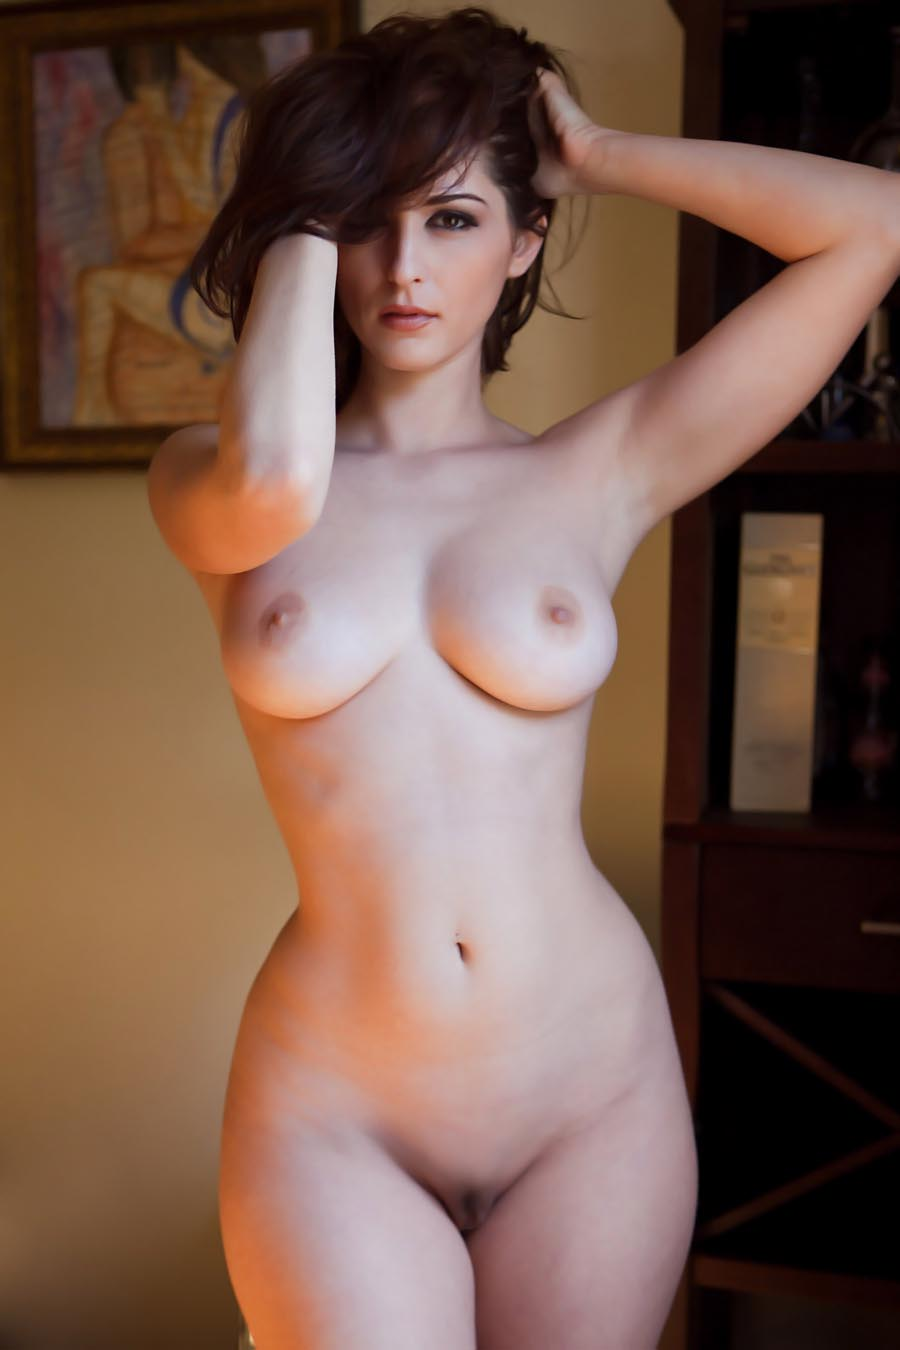 Morphed Babes: > BEAUTIFUL HIPS